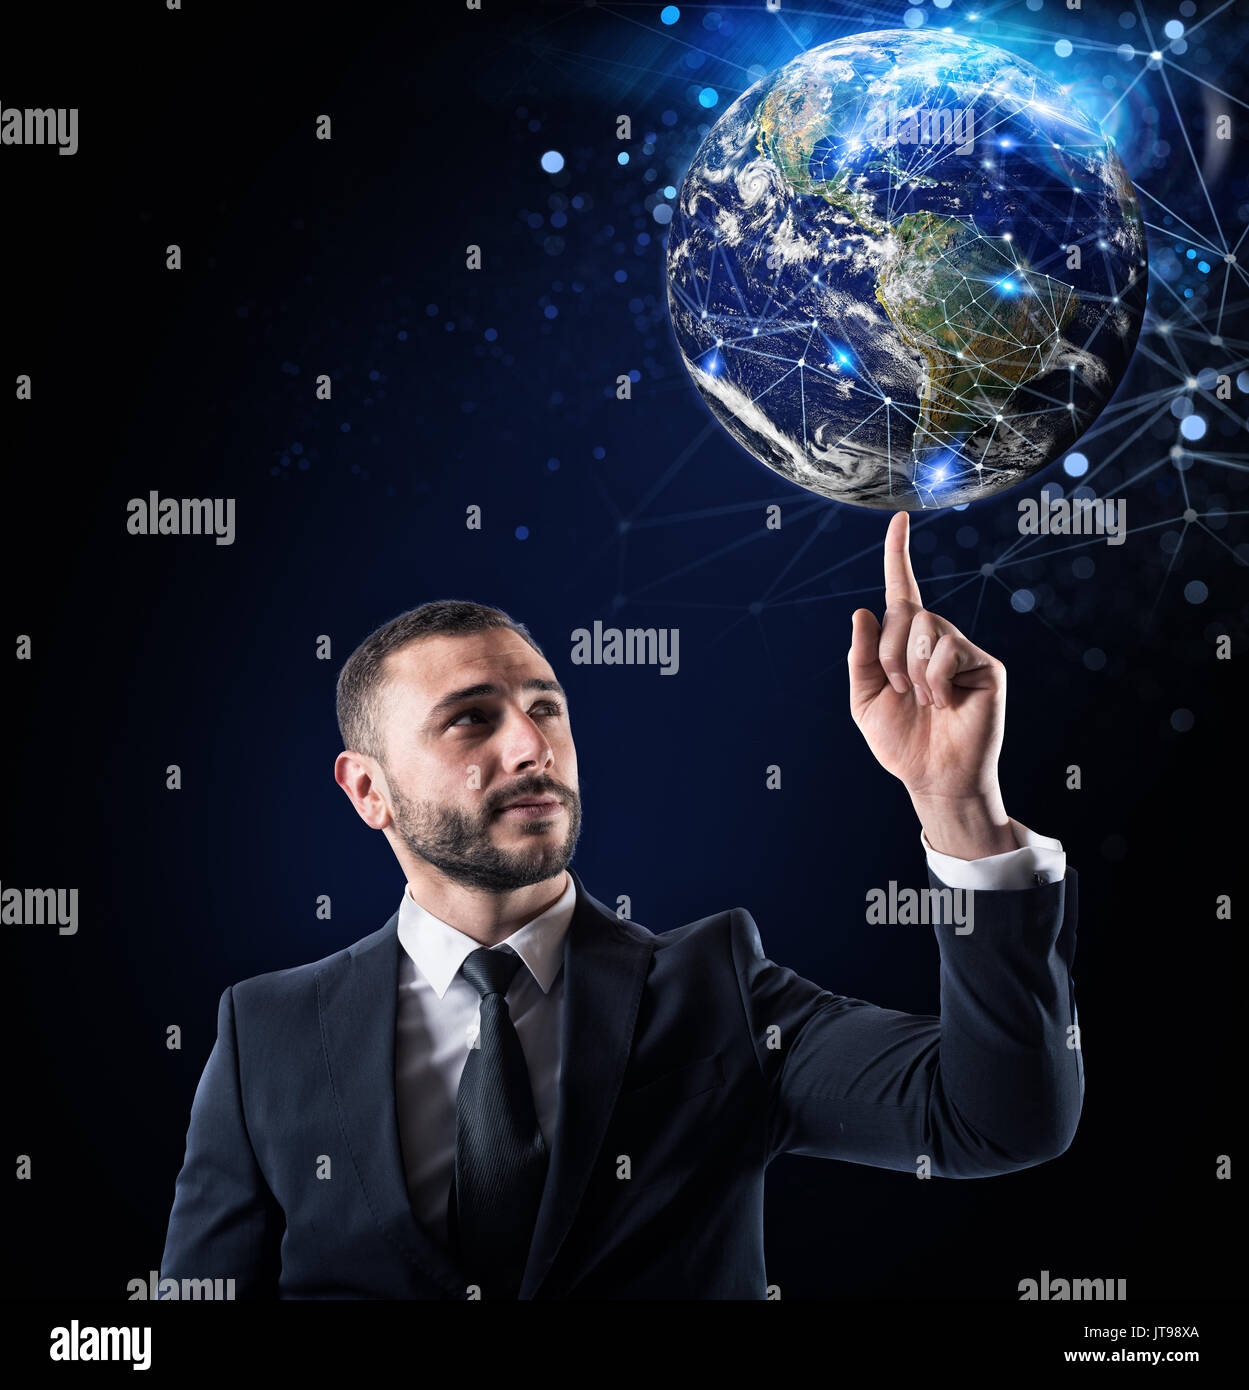 Global internet connection concept. World provided by NASA - Stock Image